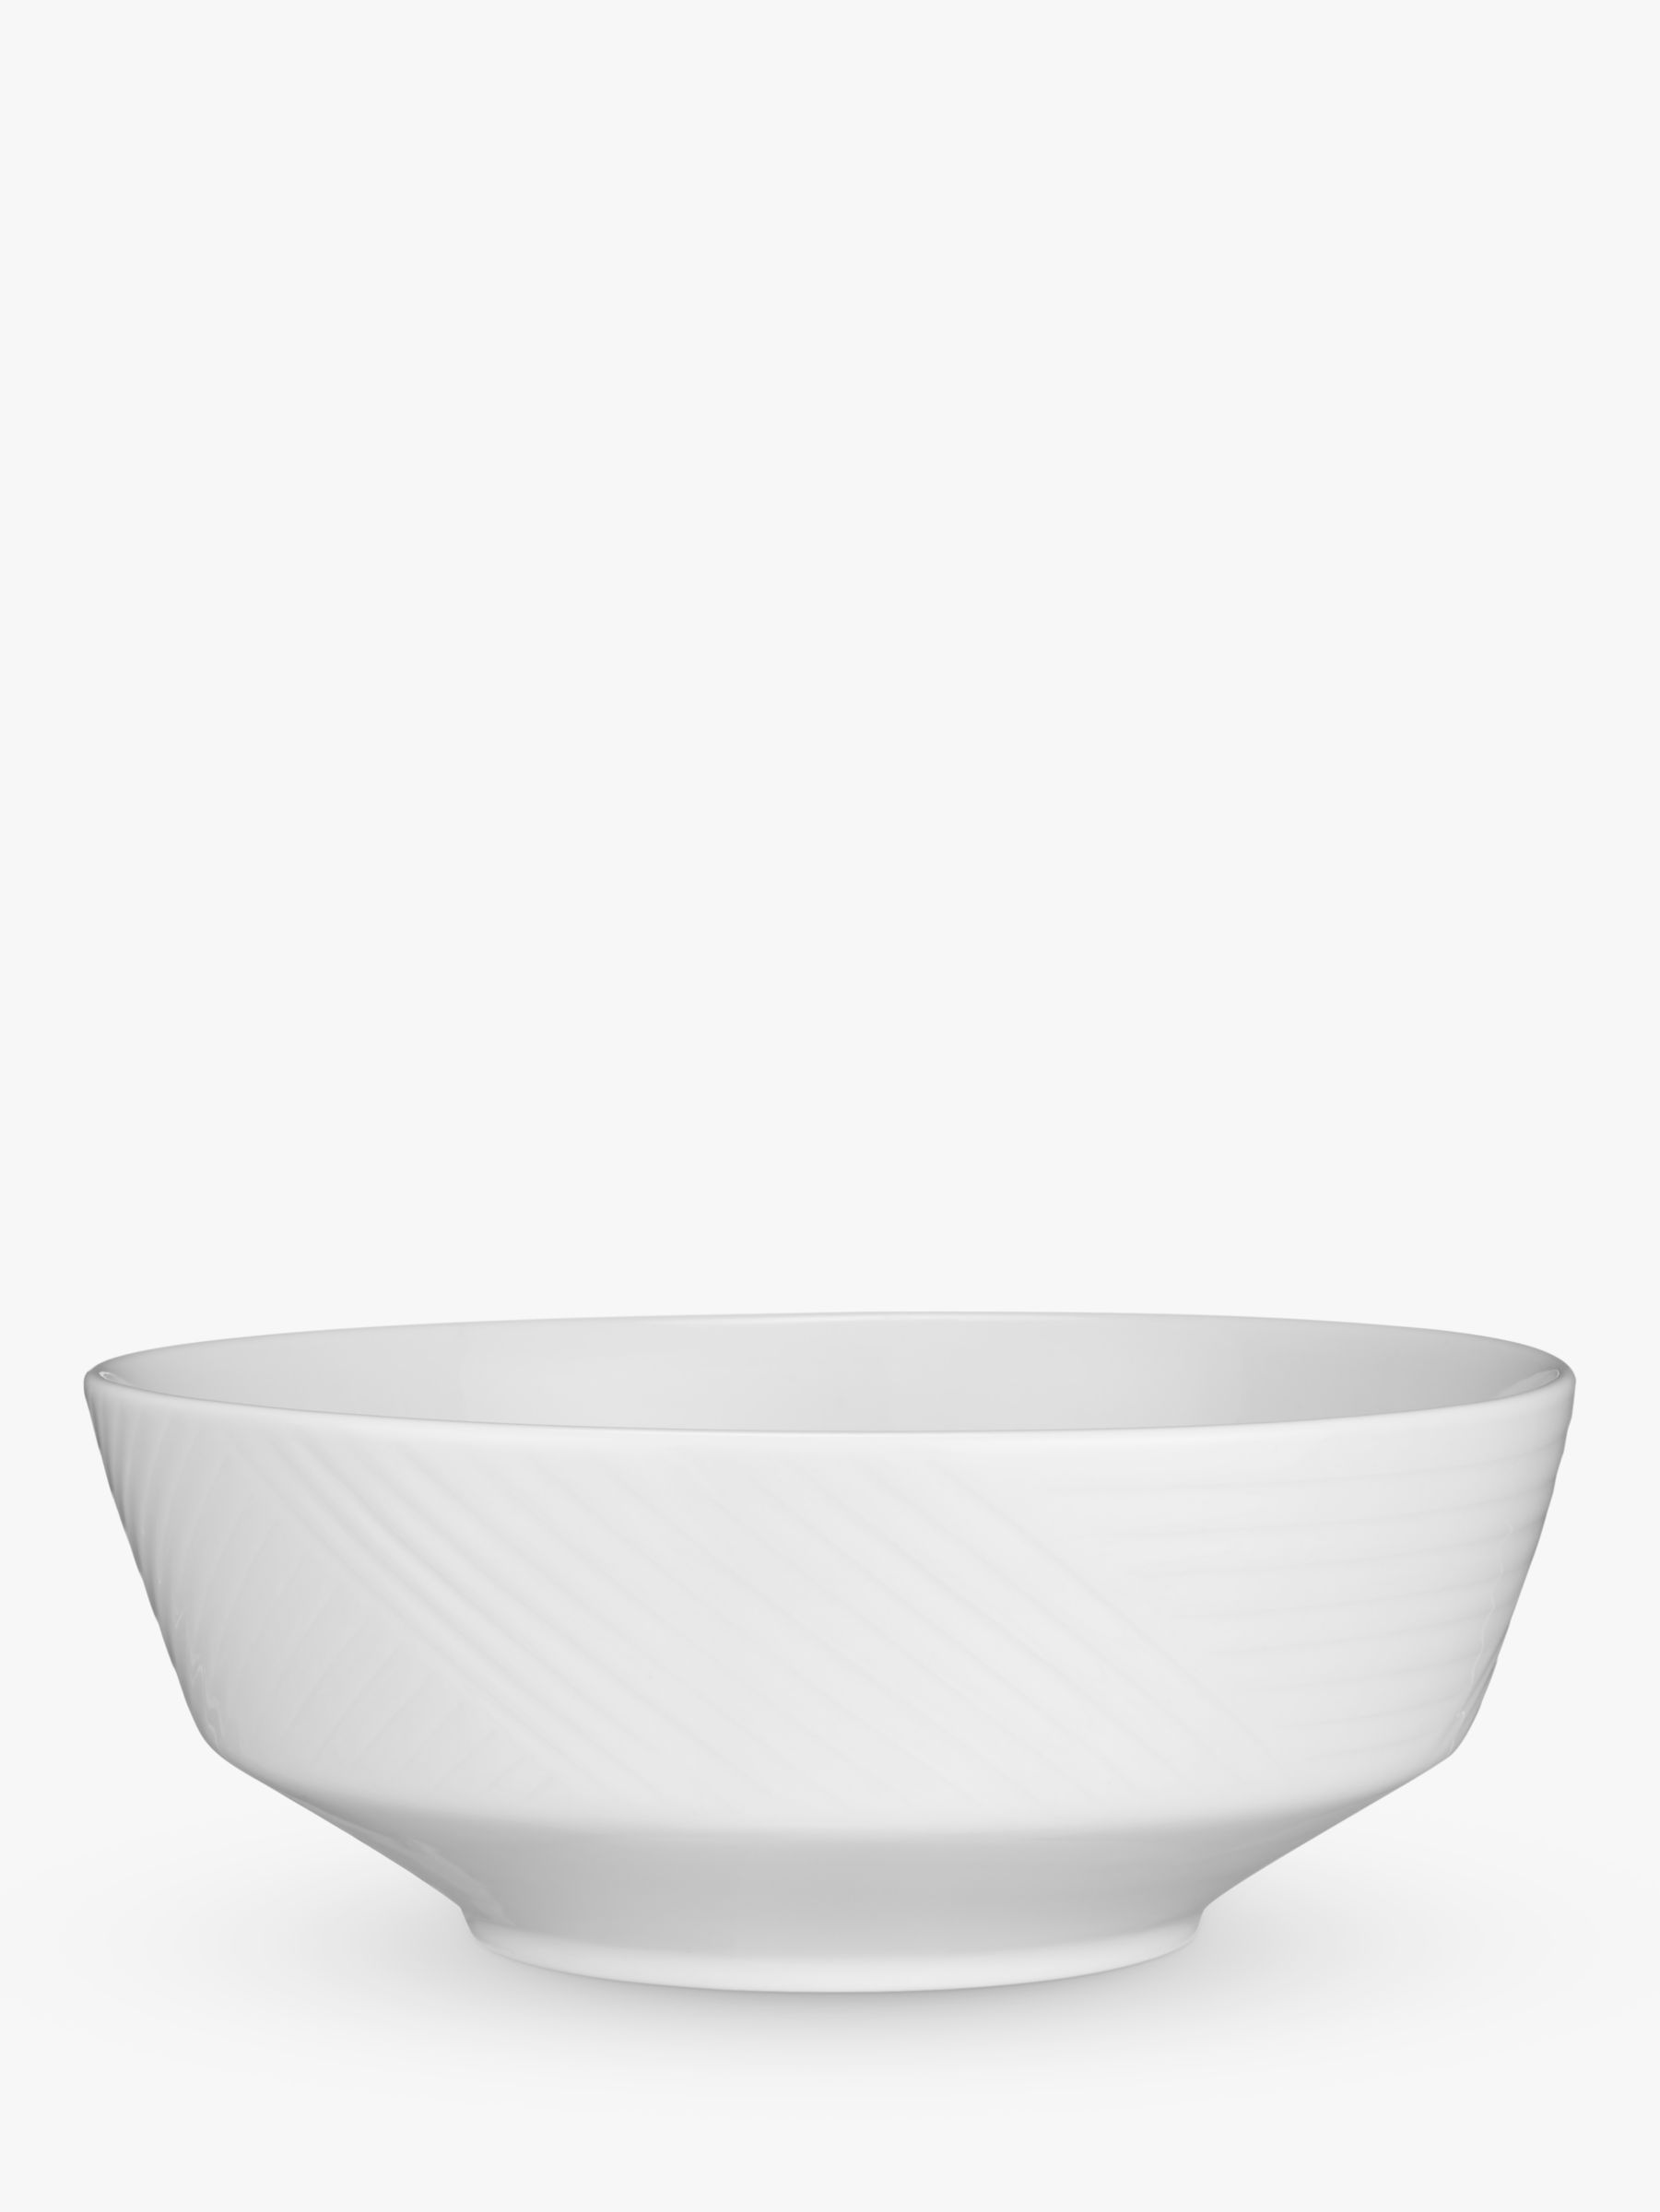 Design Project by John Lewis Design Project by John Lewis No.098 16cm Cereal Bowl